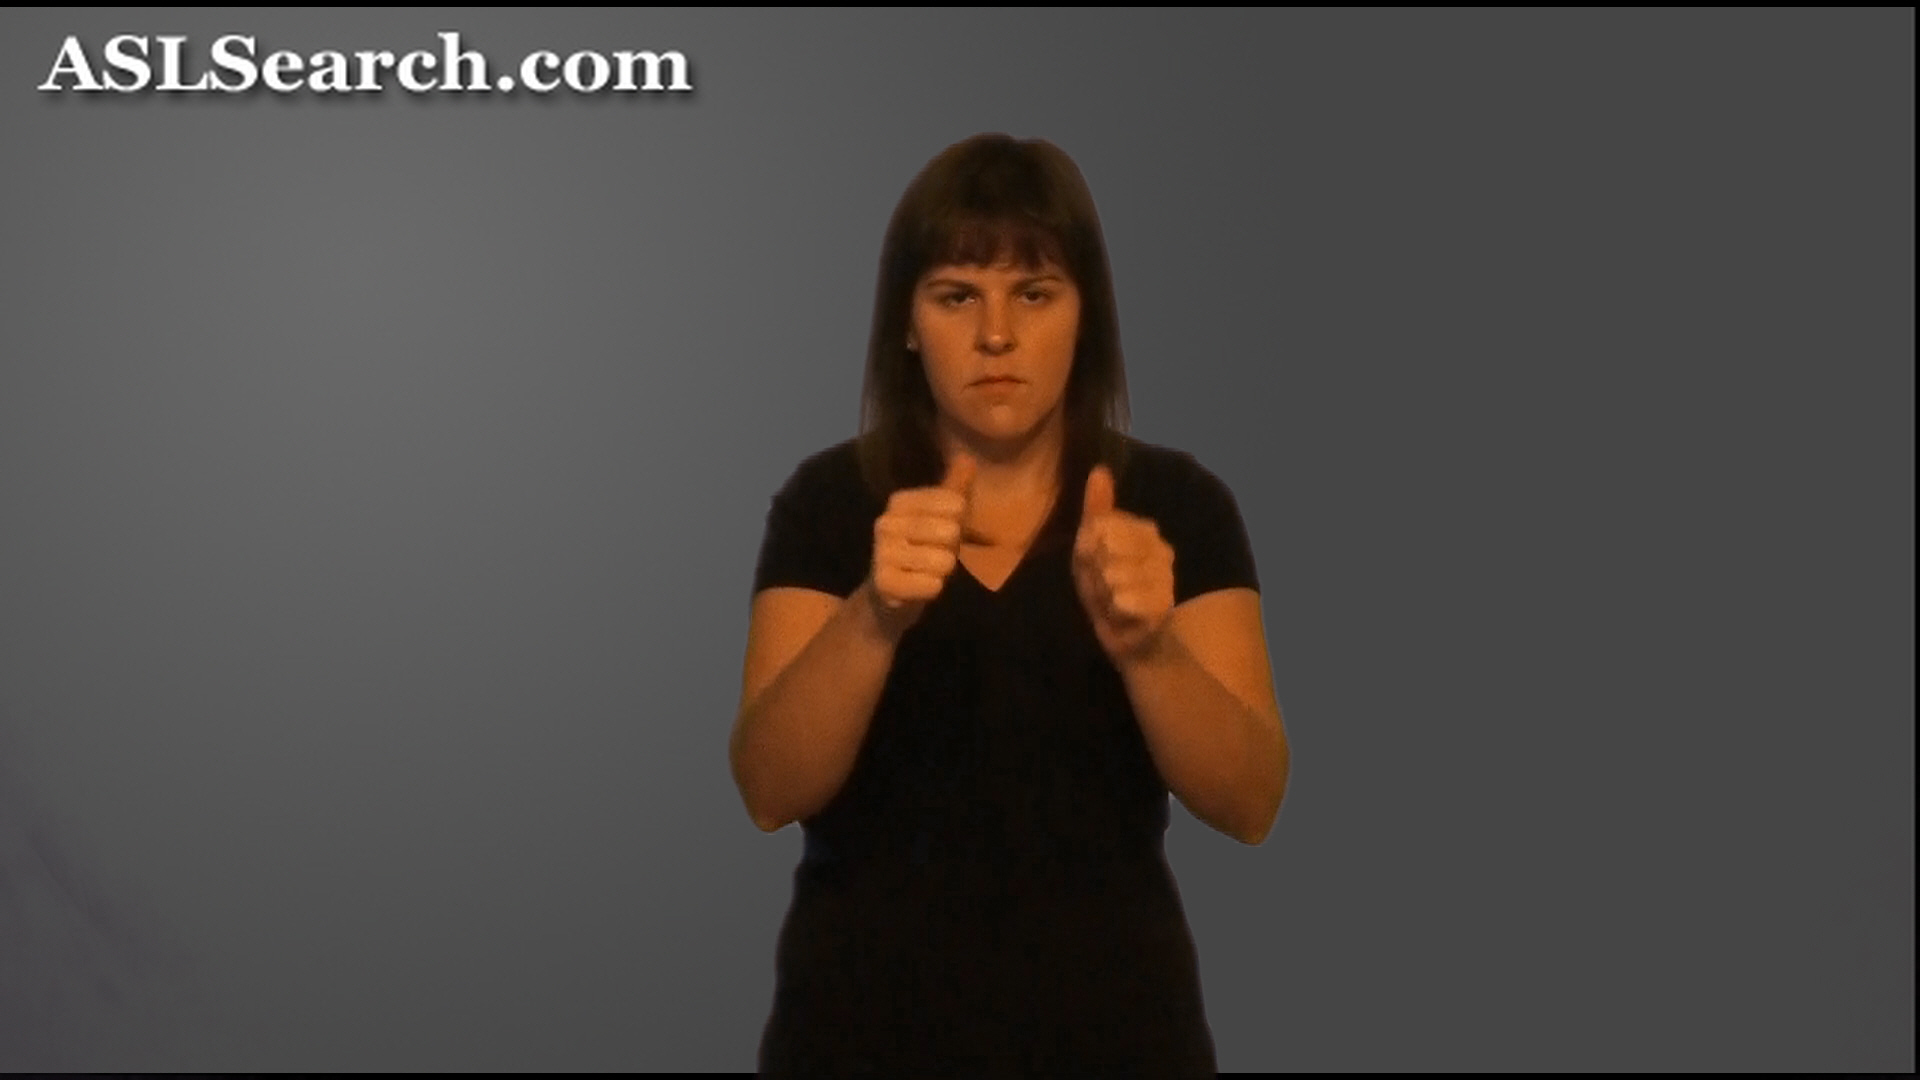 ASL for shadow